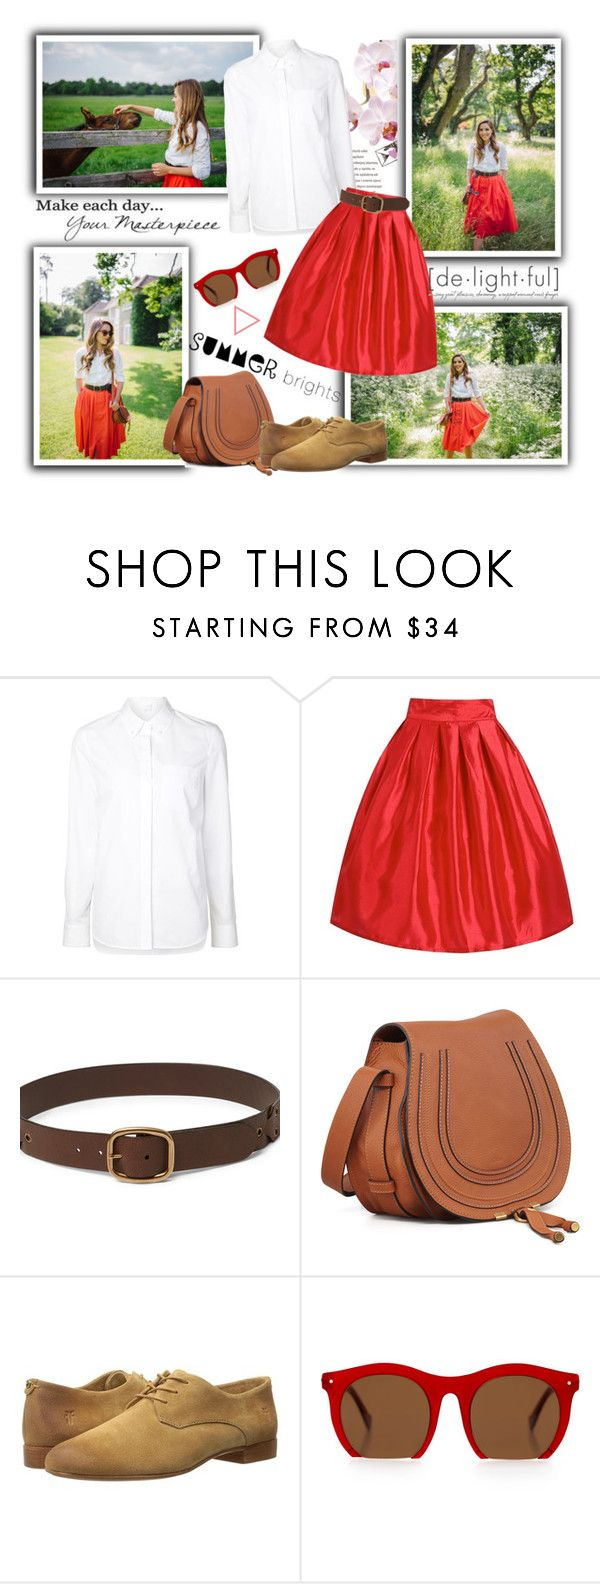 """Gal Meets Glam: Mount Juillet"" by katyusha-kis ❤ liked on Polyvore featuring Alexander Wang, Chloé, Frye, Grey Ant, blogger, coral, BloggerStyle, galmeetsglam and summerbrights"